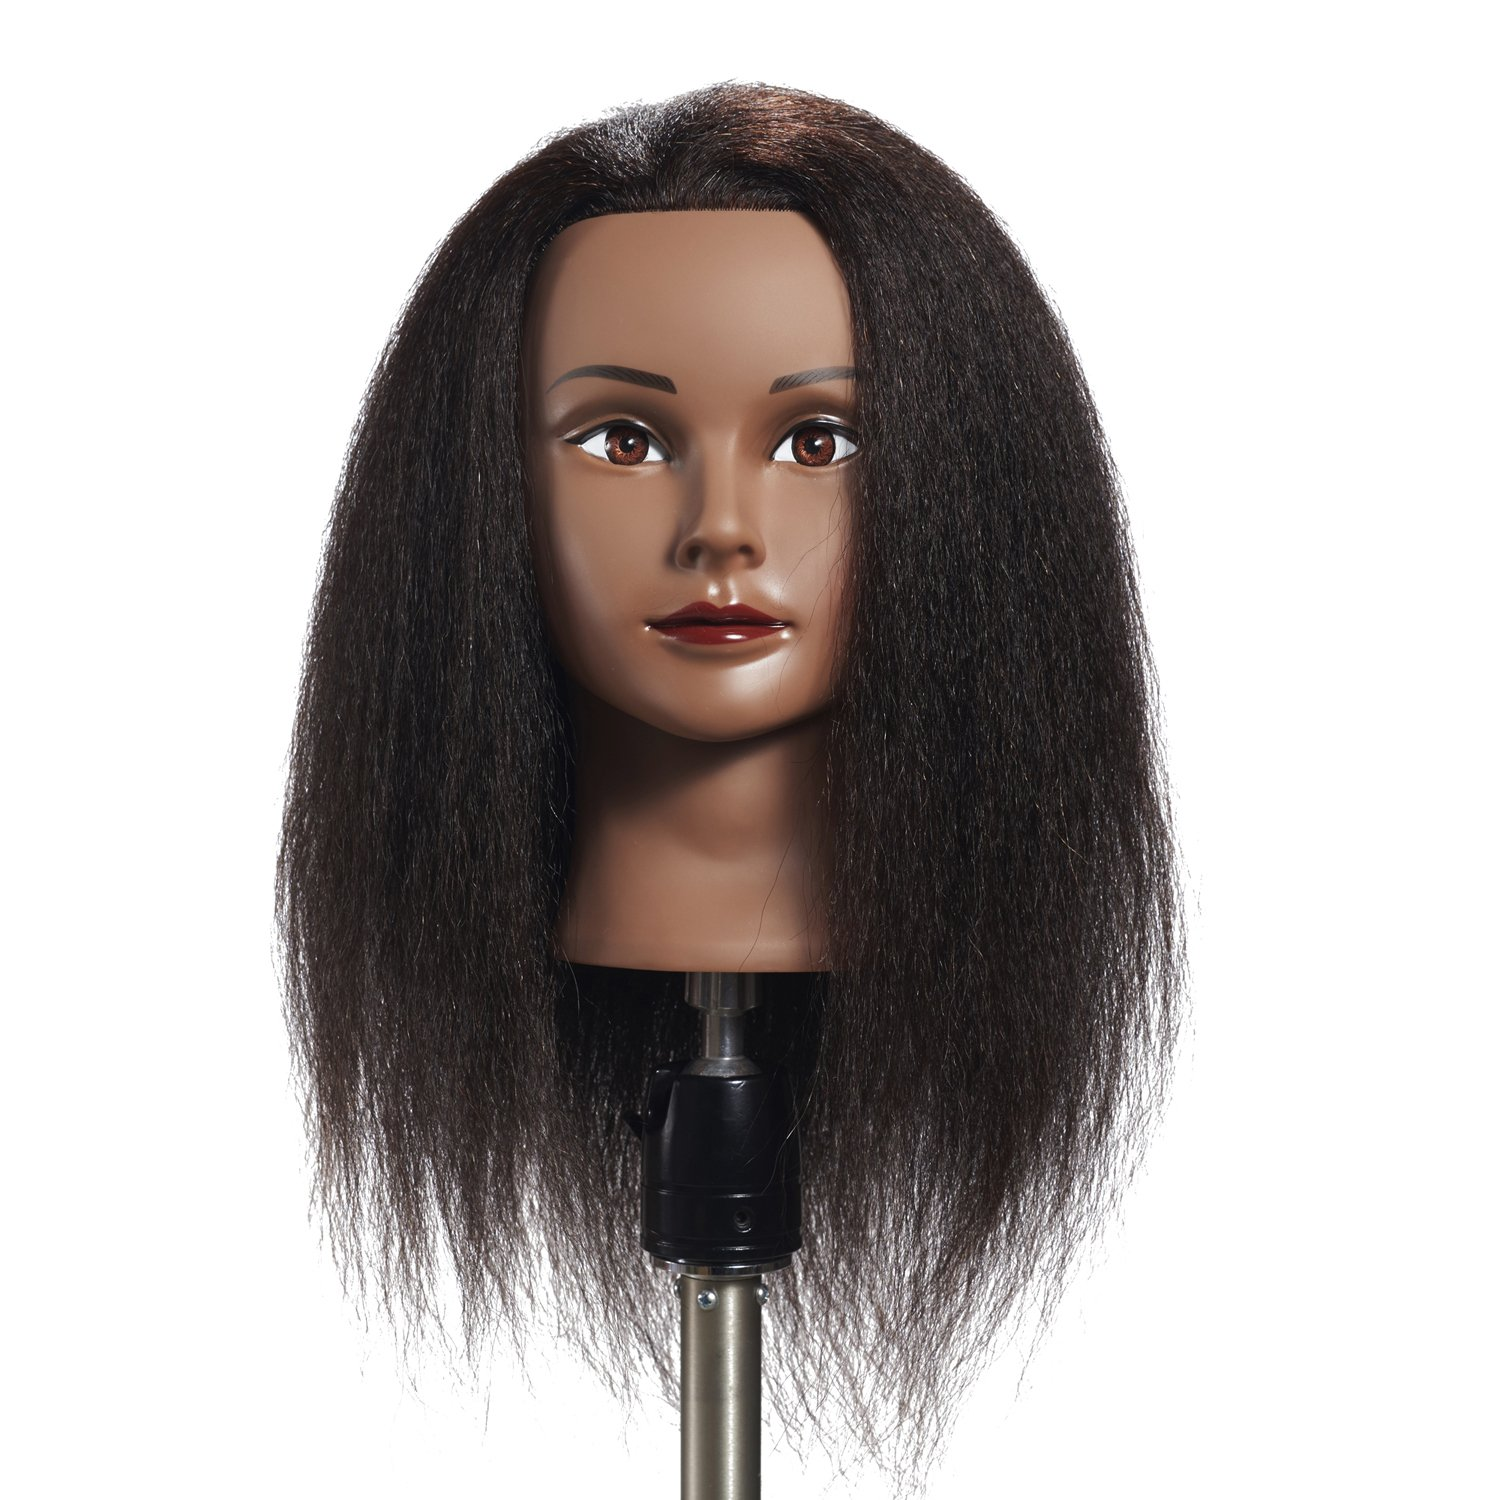 6892a4b8f97e2 Hairginkgo 100% Real Hair Mannequin Head Hairdresser Training Head Manikin  Cosmetology Doll Head (91711B0216